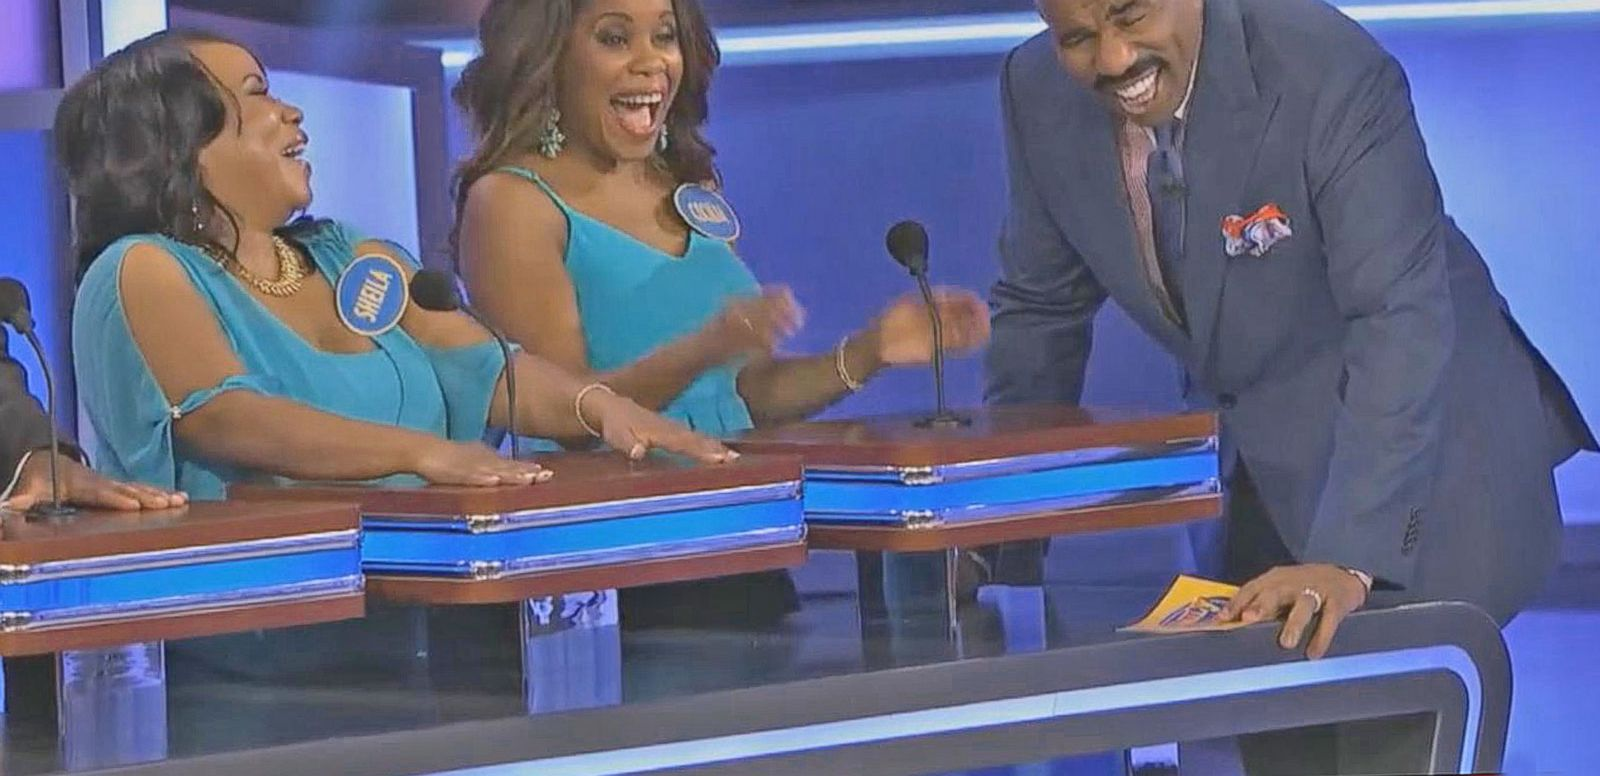 VIDEO: 'Family Feud' Contestant's Hilarious Response Goes Viral